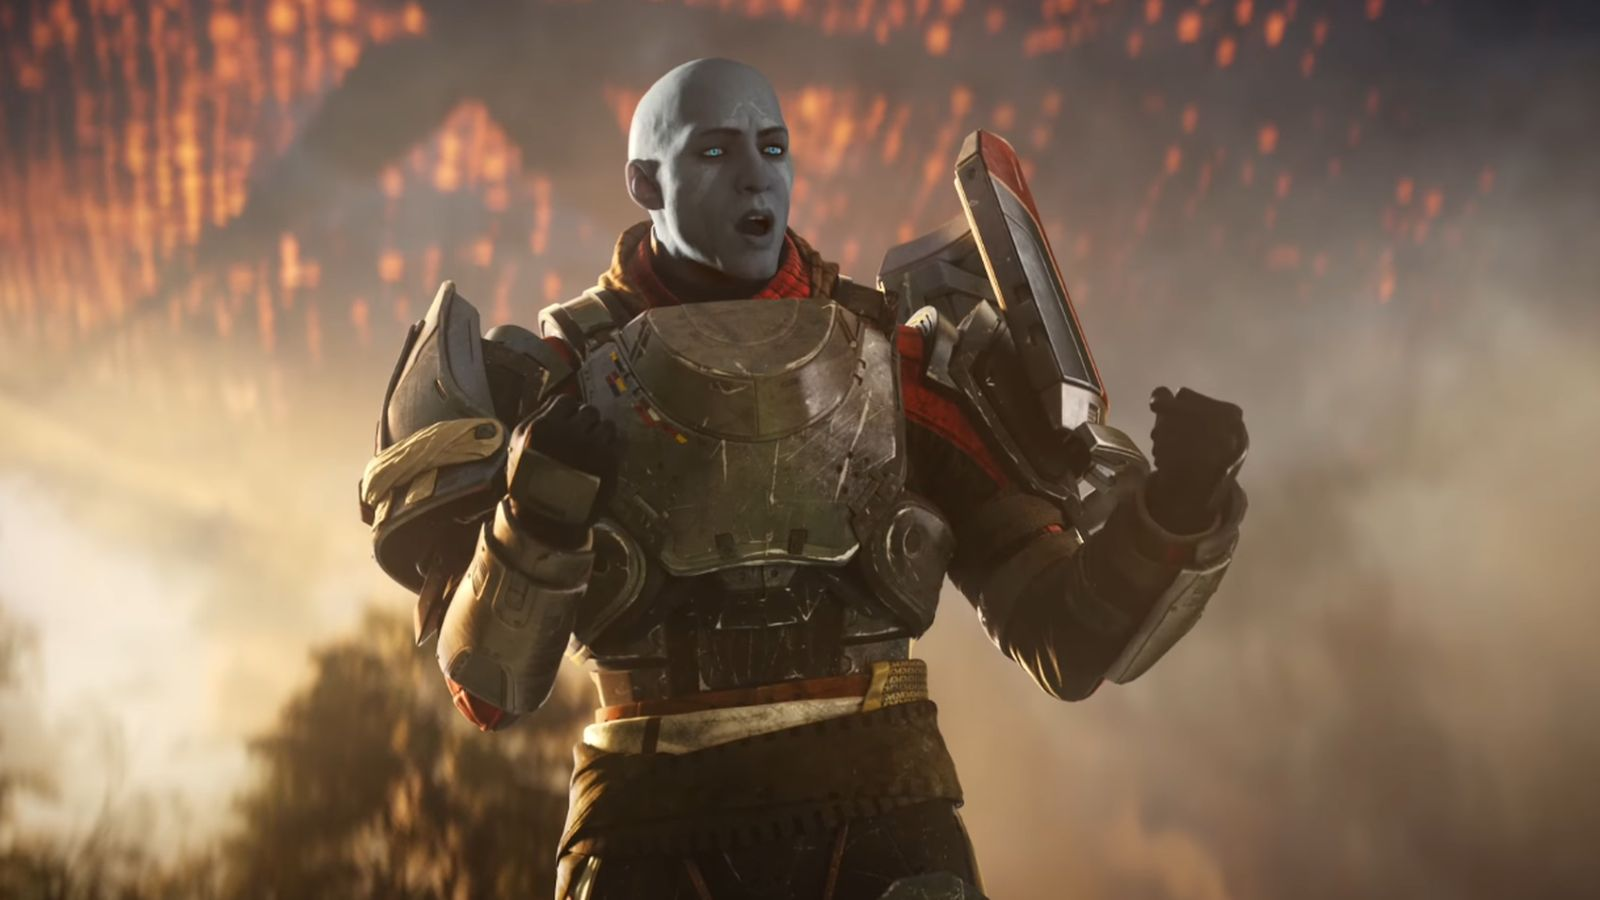 Destiny 2 PS4 Pro Won't Be 60fps: Bungie